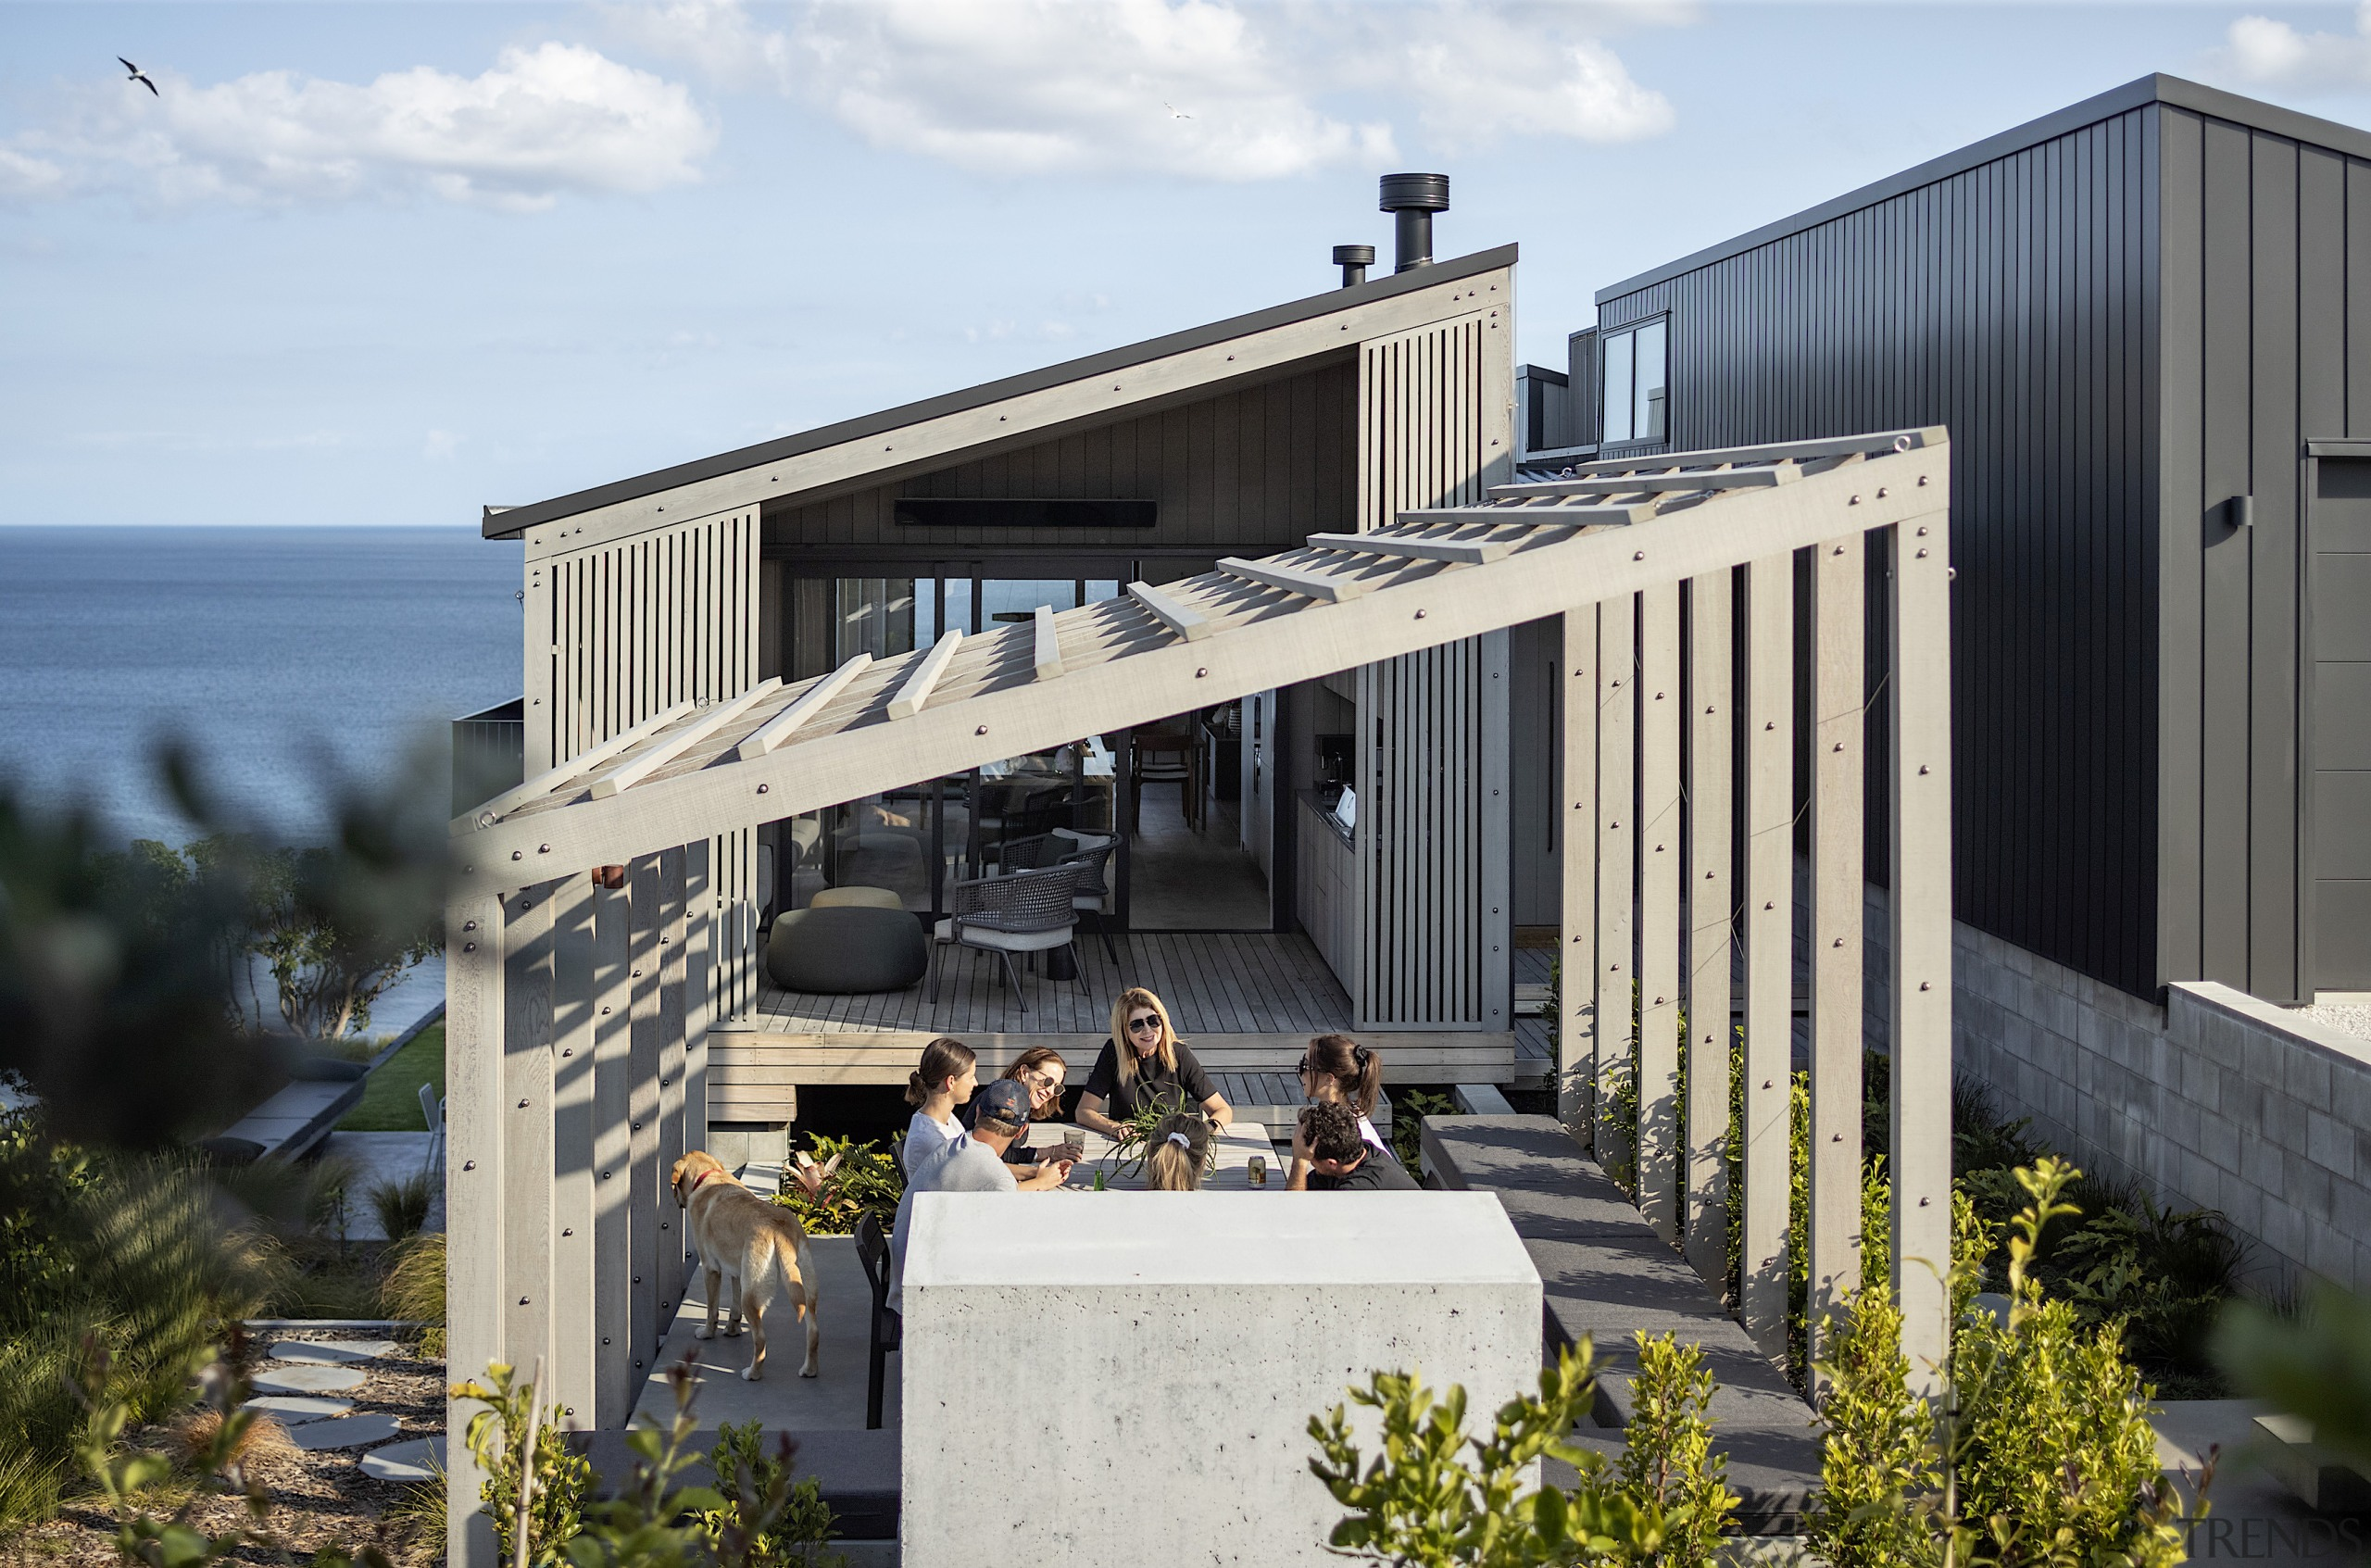 Spaces in this family holiday home needed to